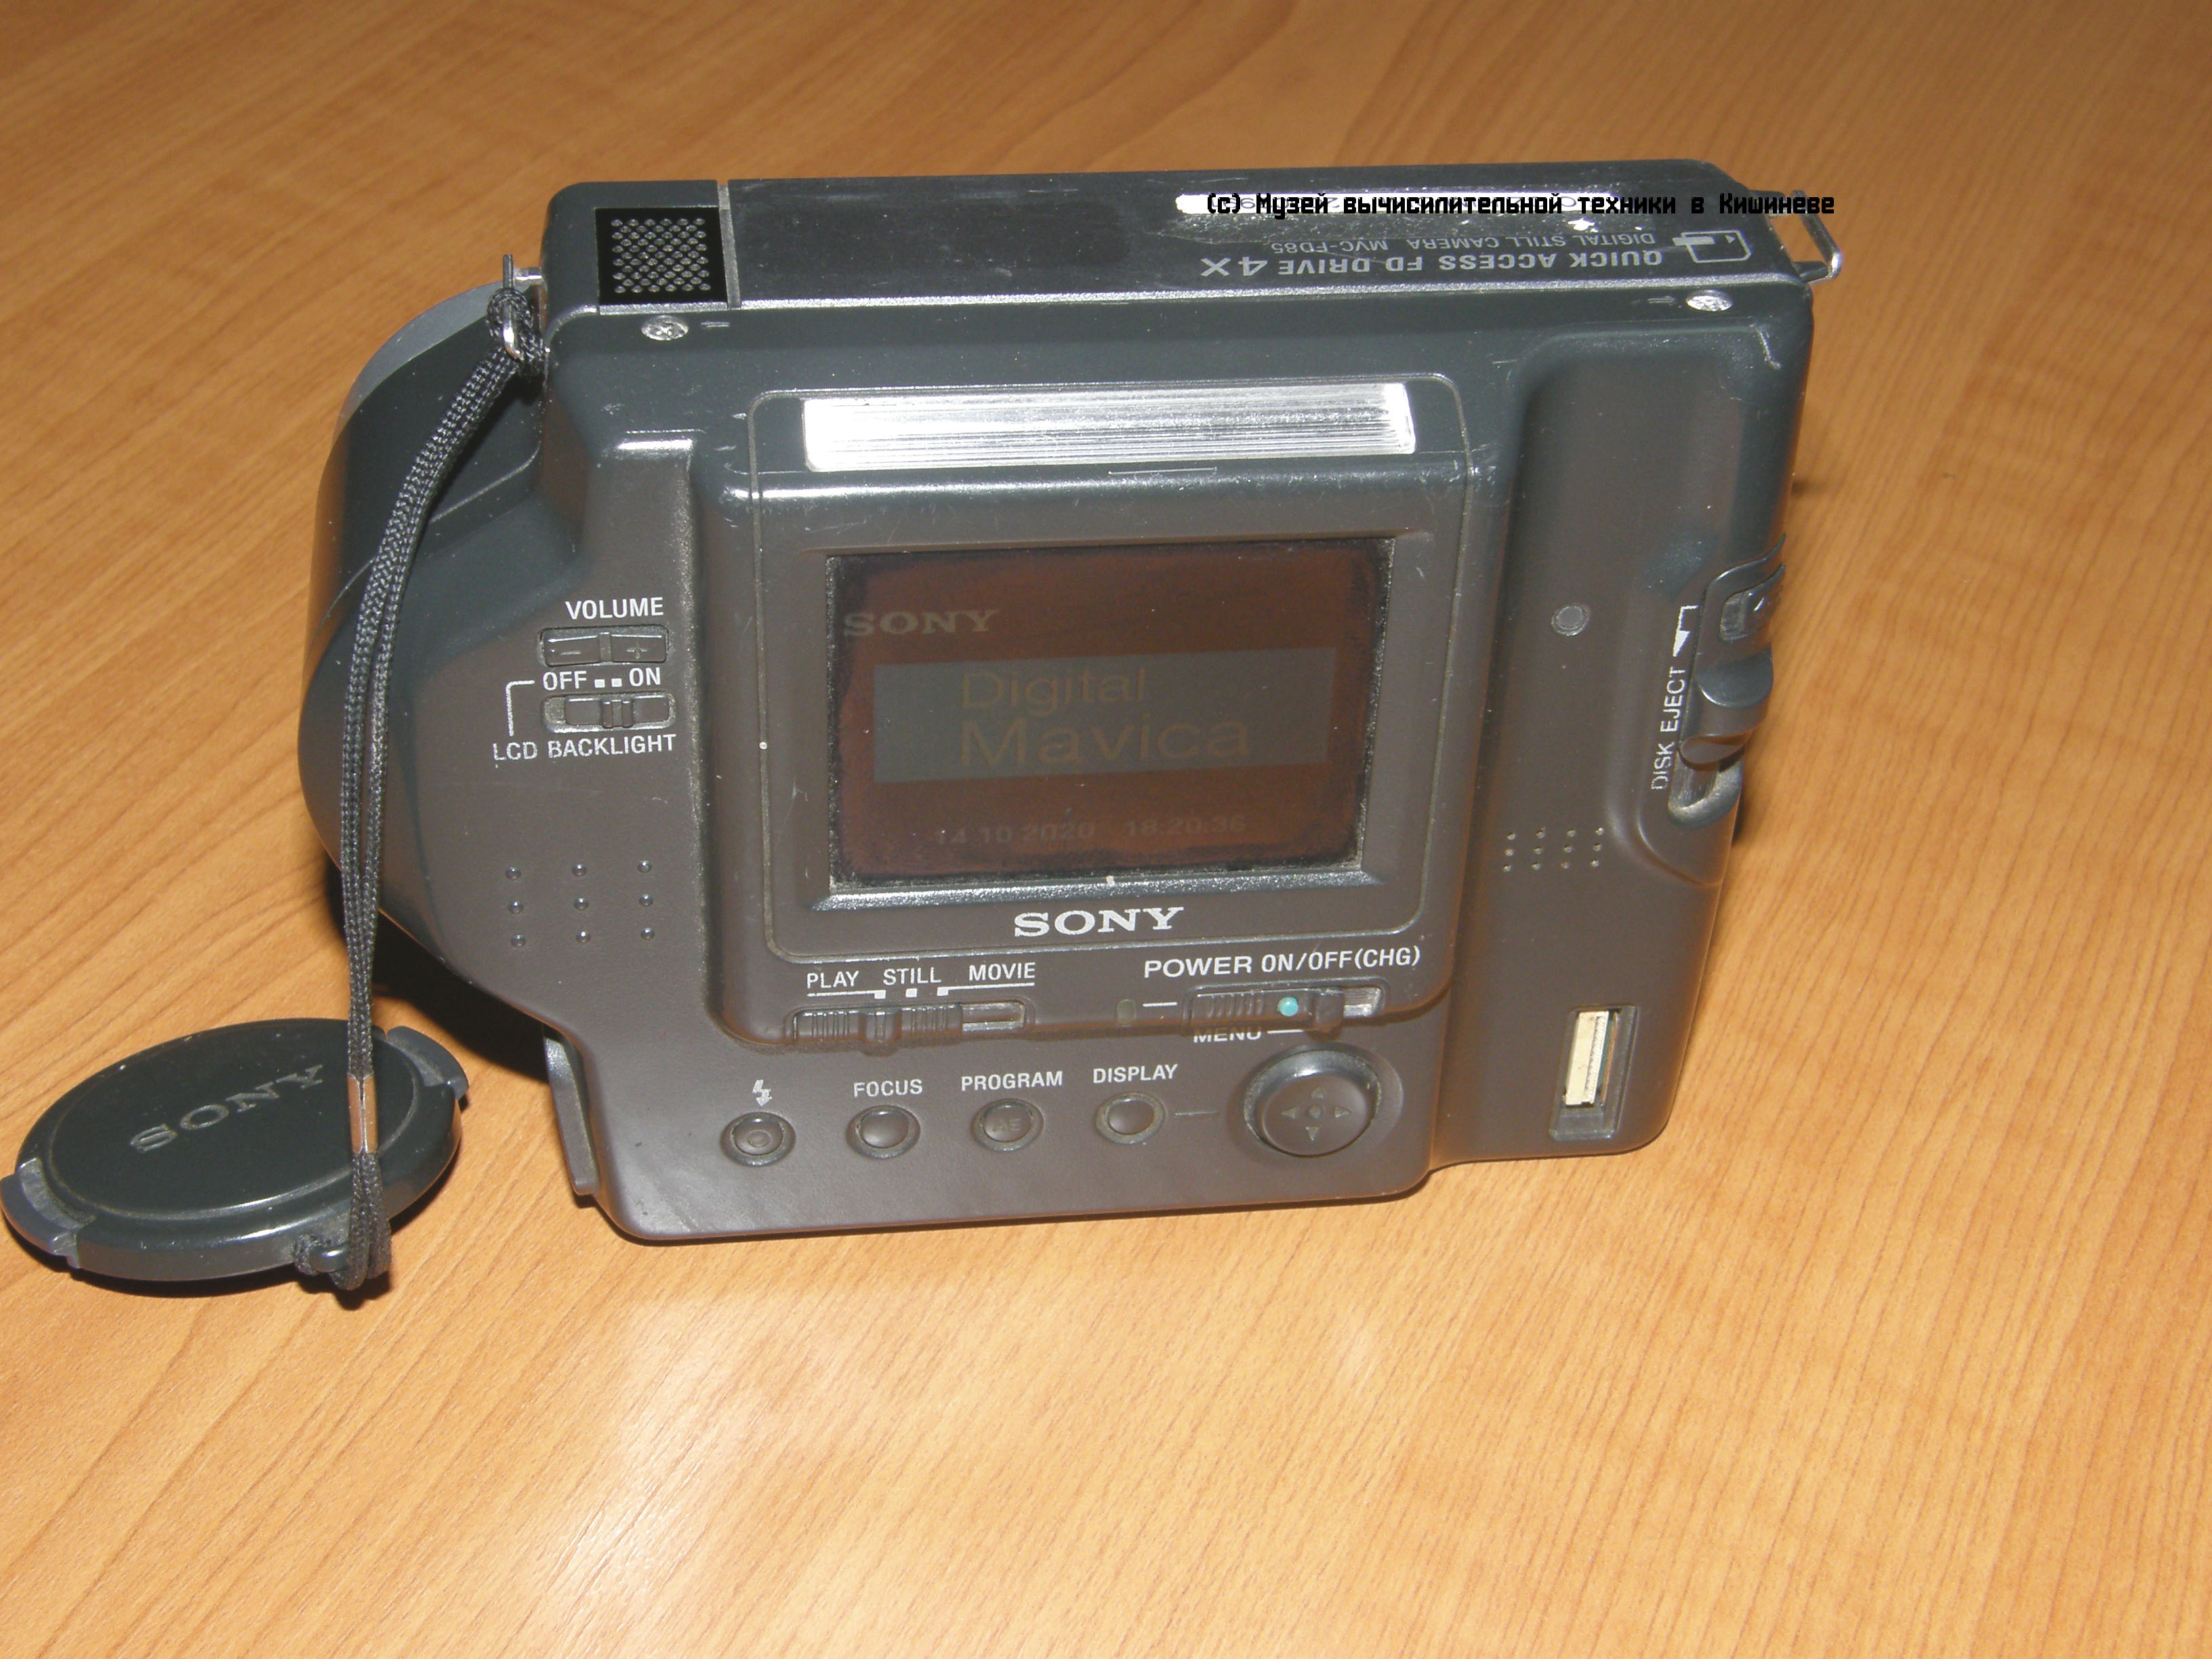 Sony Mavica Main View